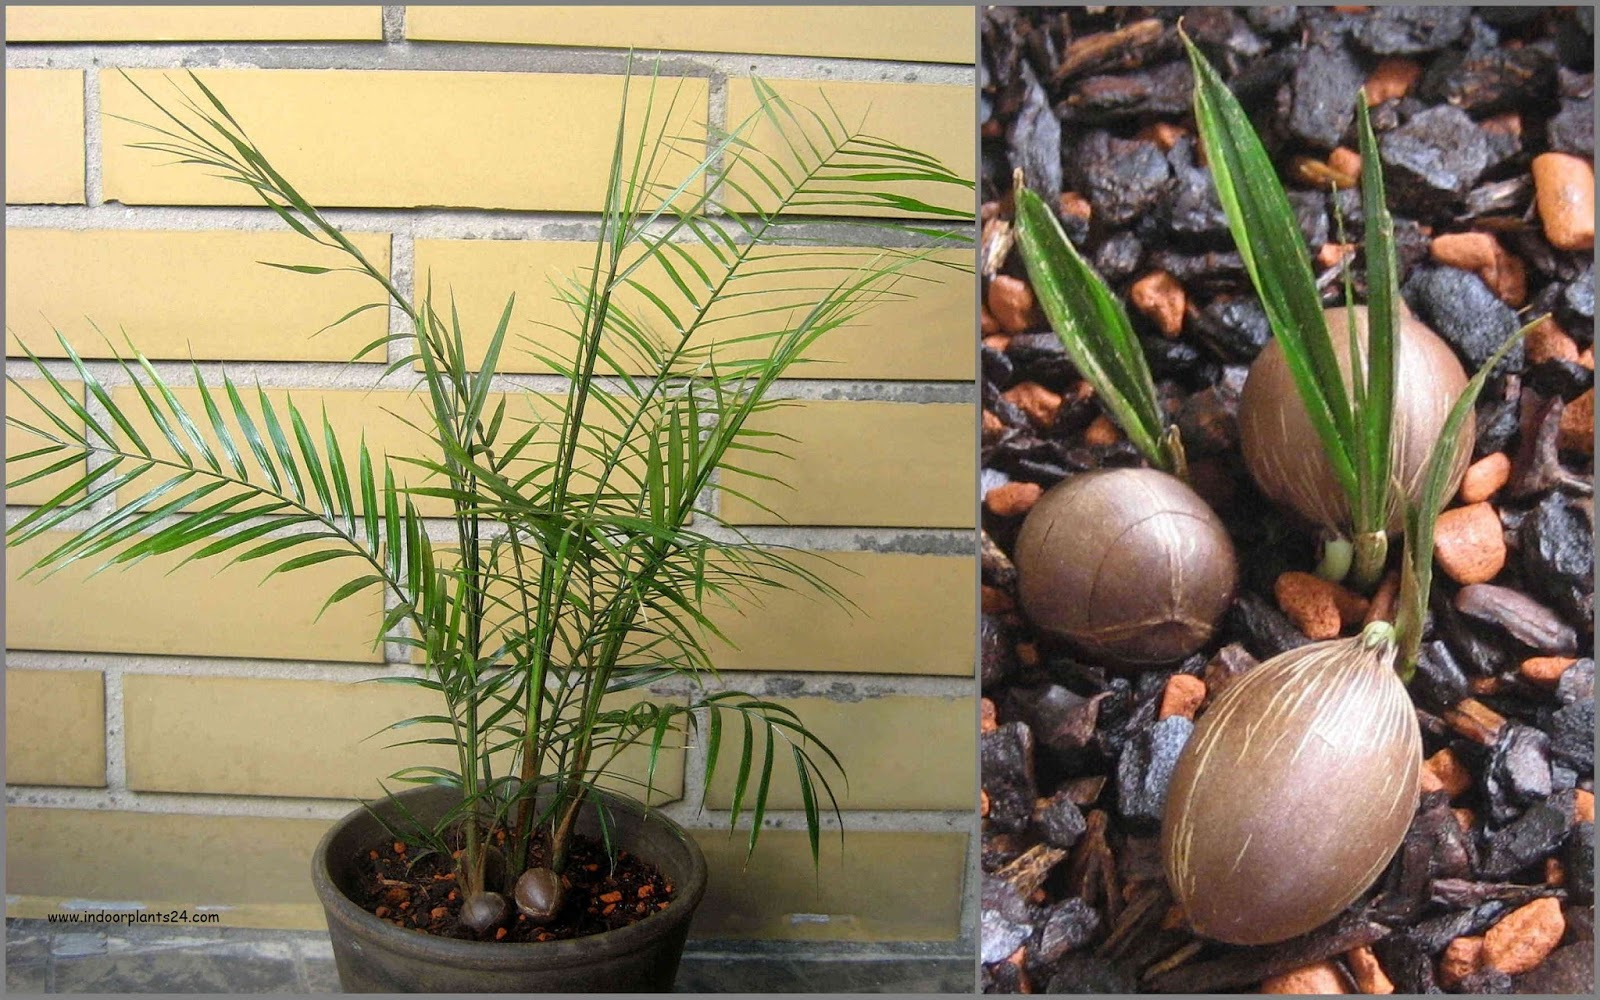 indoor%2Bpalm%2Bplant%2Bidentification Palm Looking House Plant on palm like plant thin leaves, spider mites on palm plant, palm house plant identification, palm plants care of,